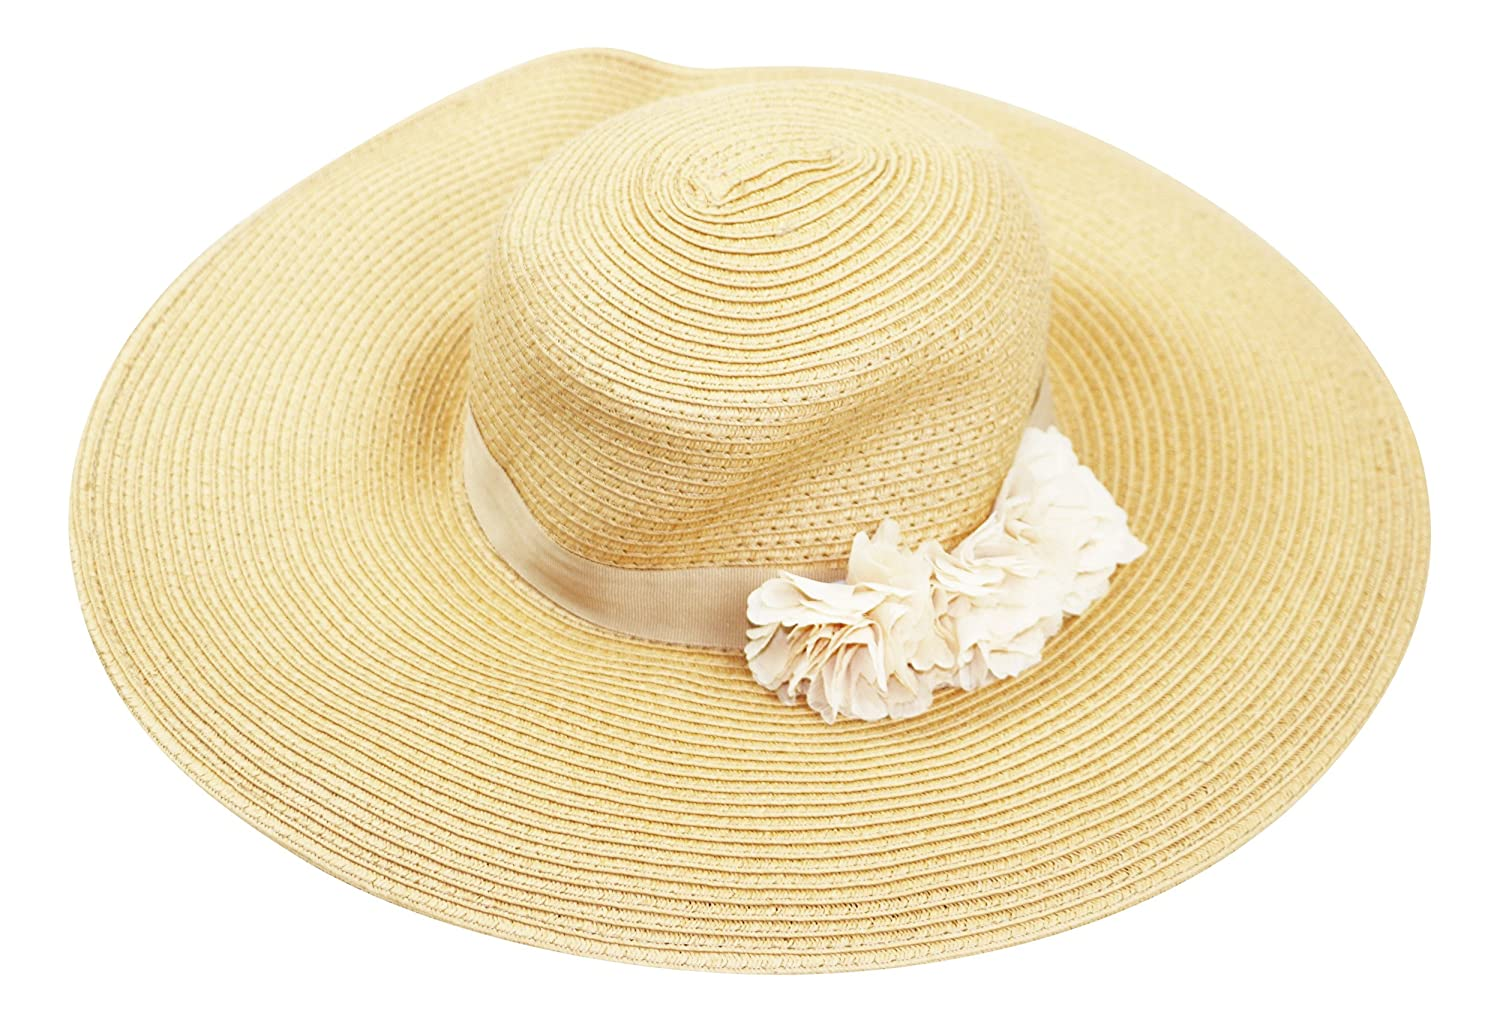 6b0dc30e605 August Hat CO Fantasy Floral Adjustable Floppy Sun Hat (Natural